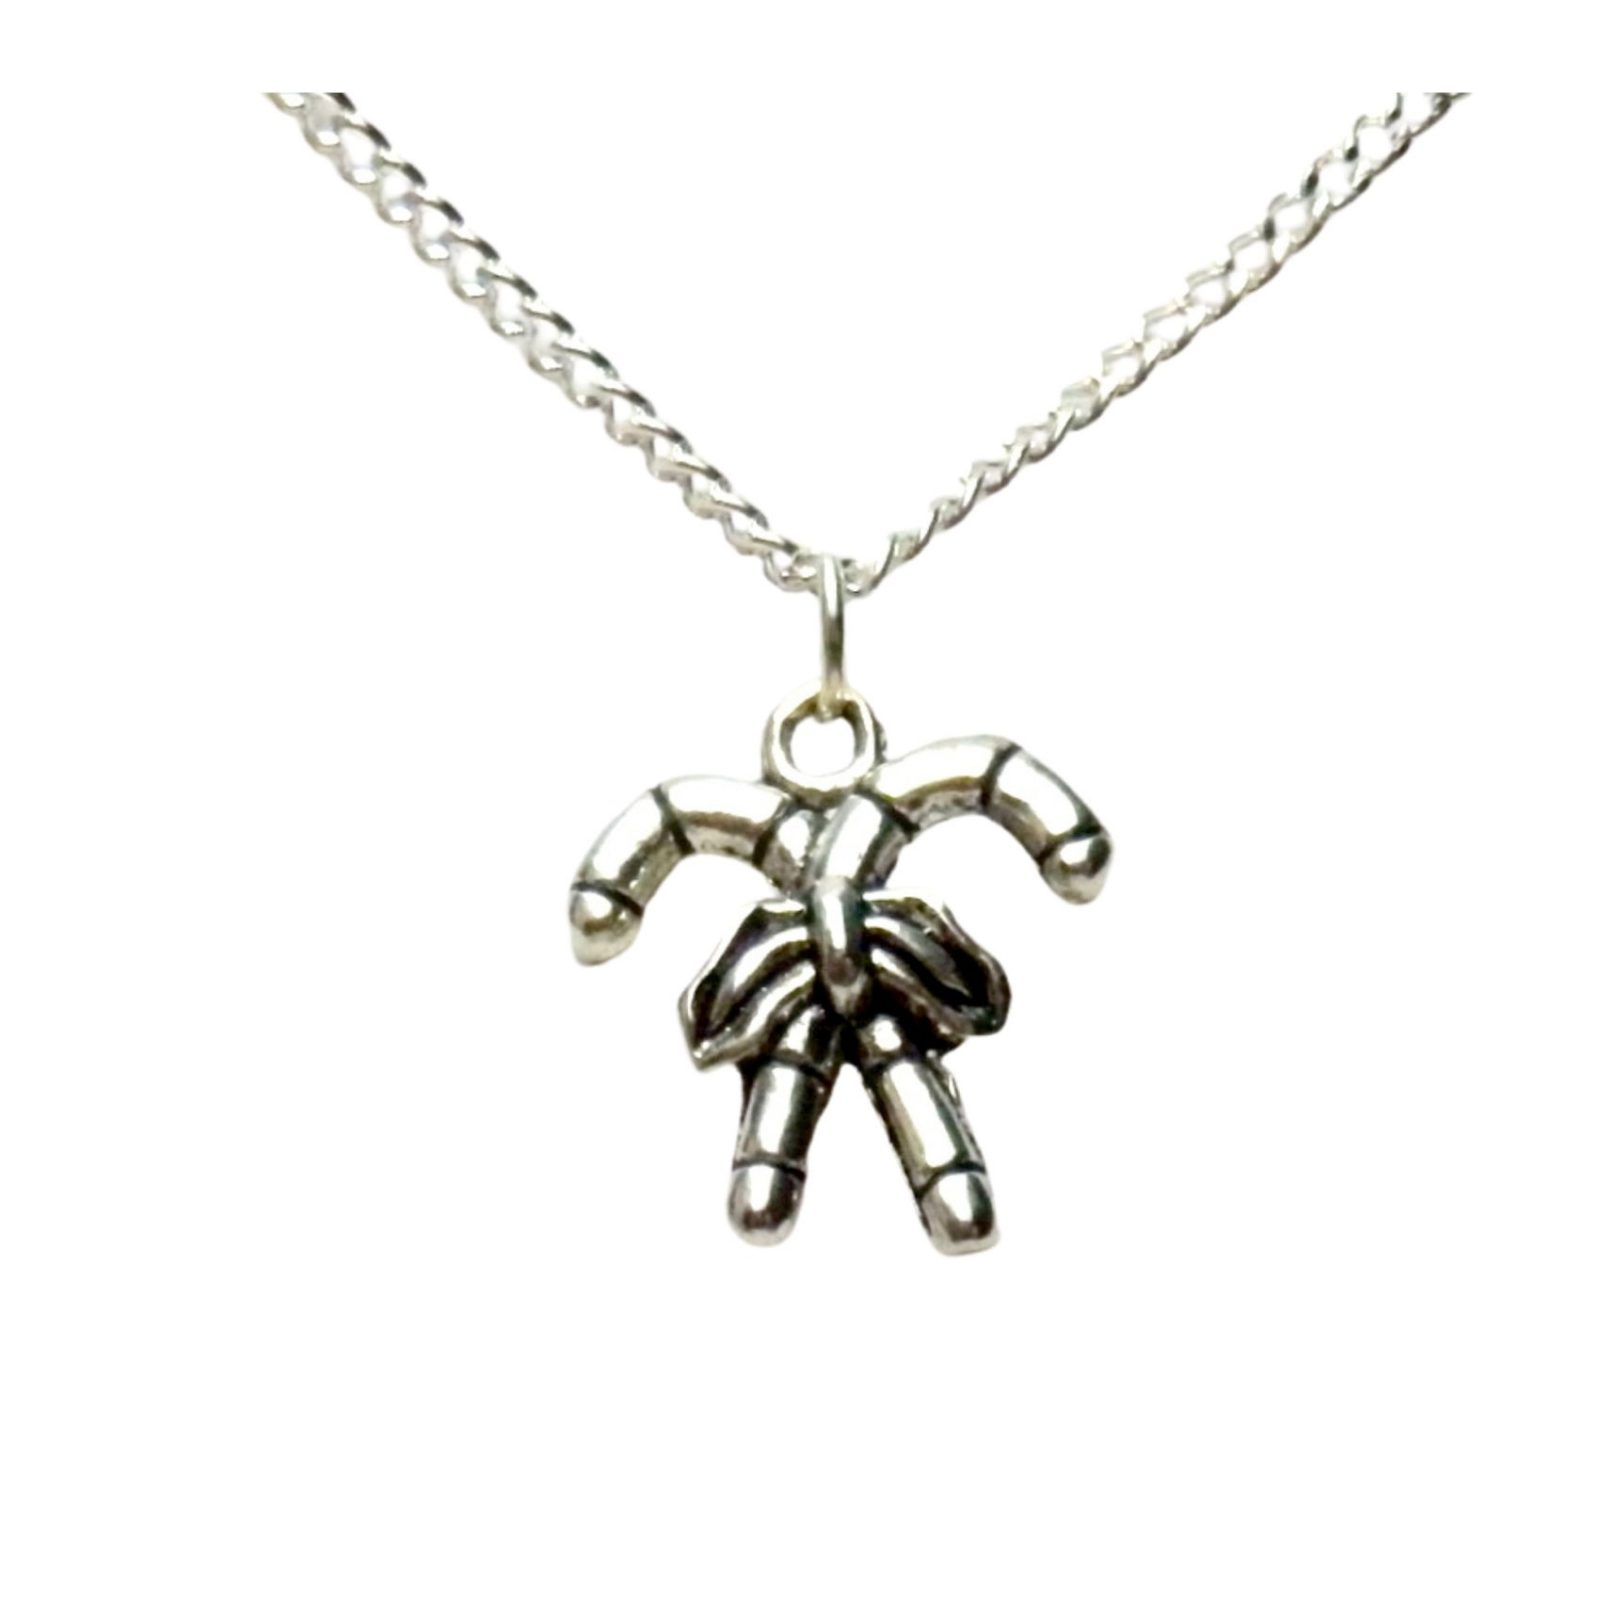 Crossed candy cane necklace 1467